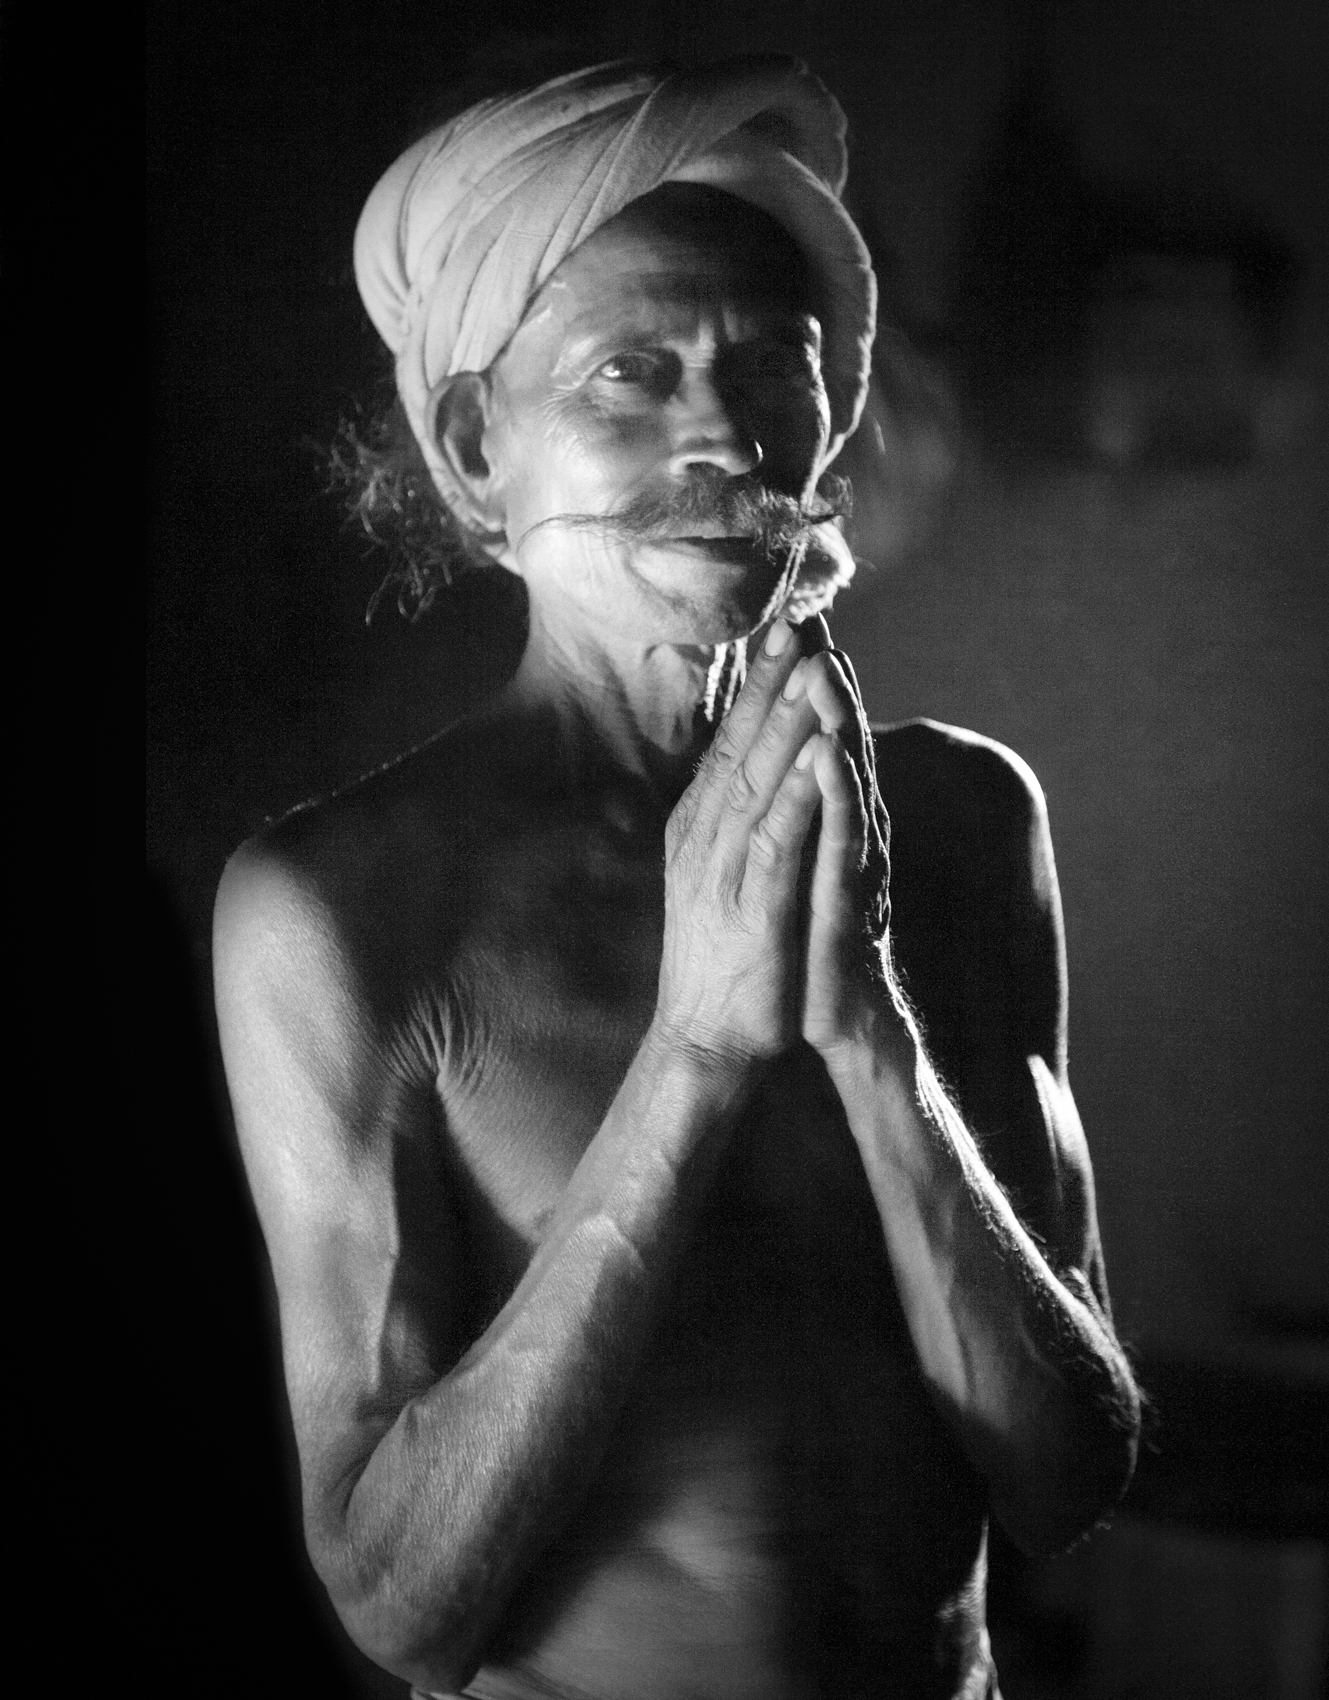 Sursi elder, India